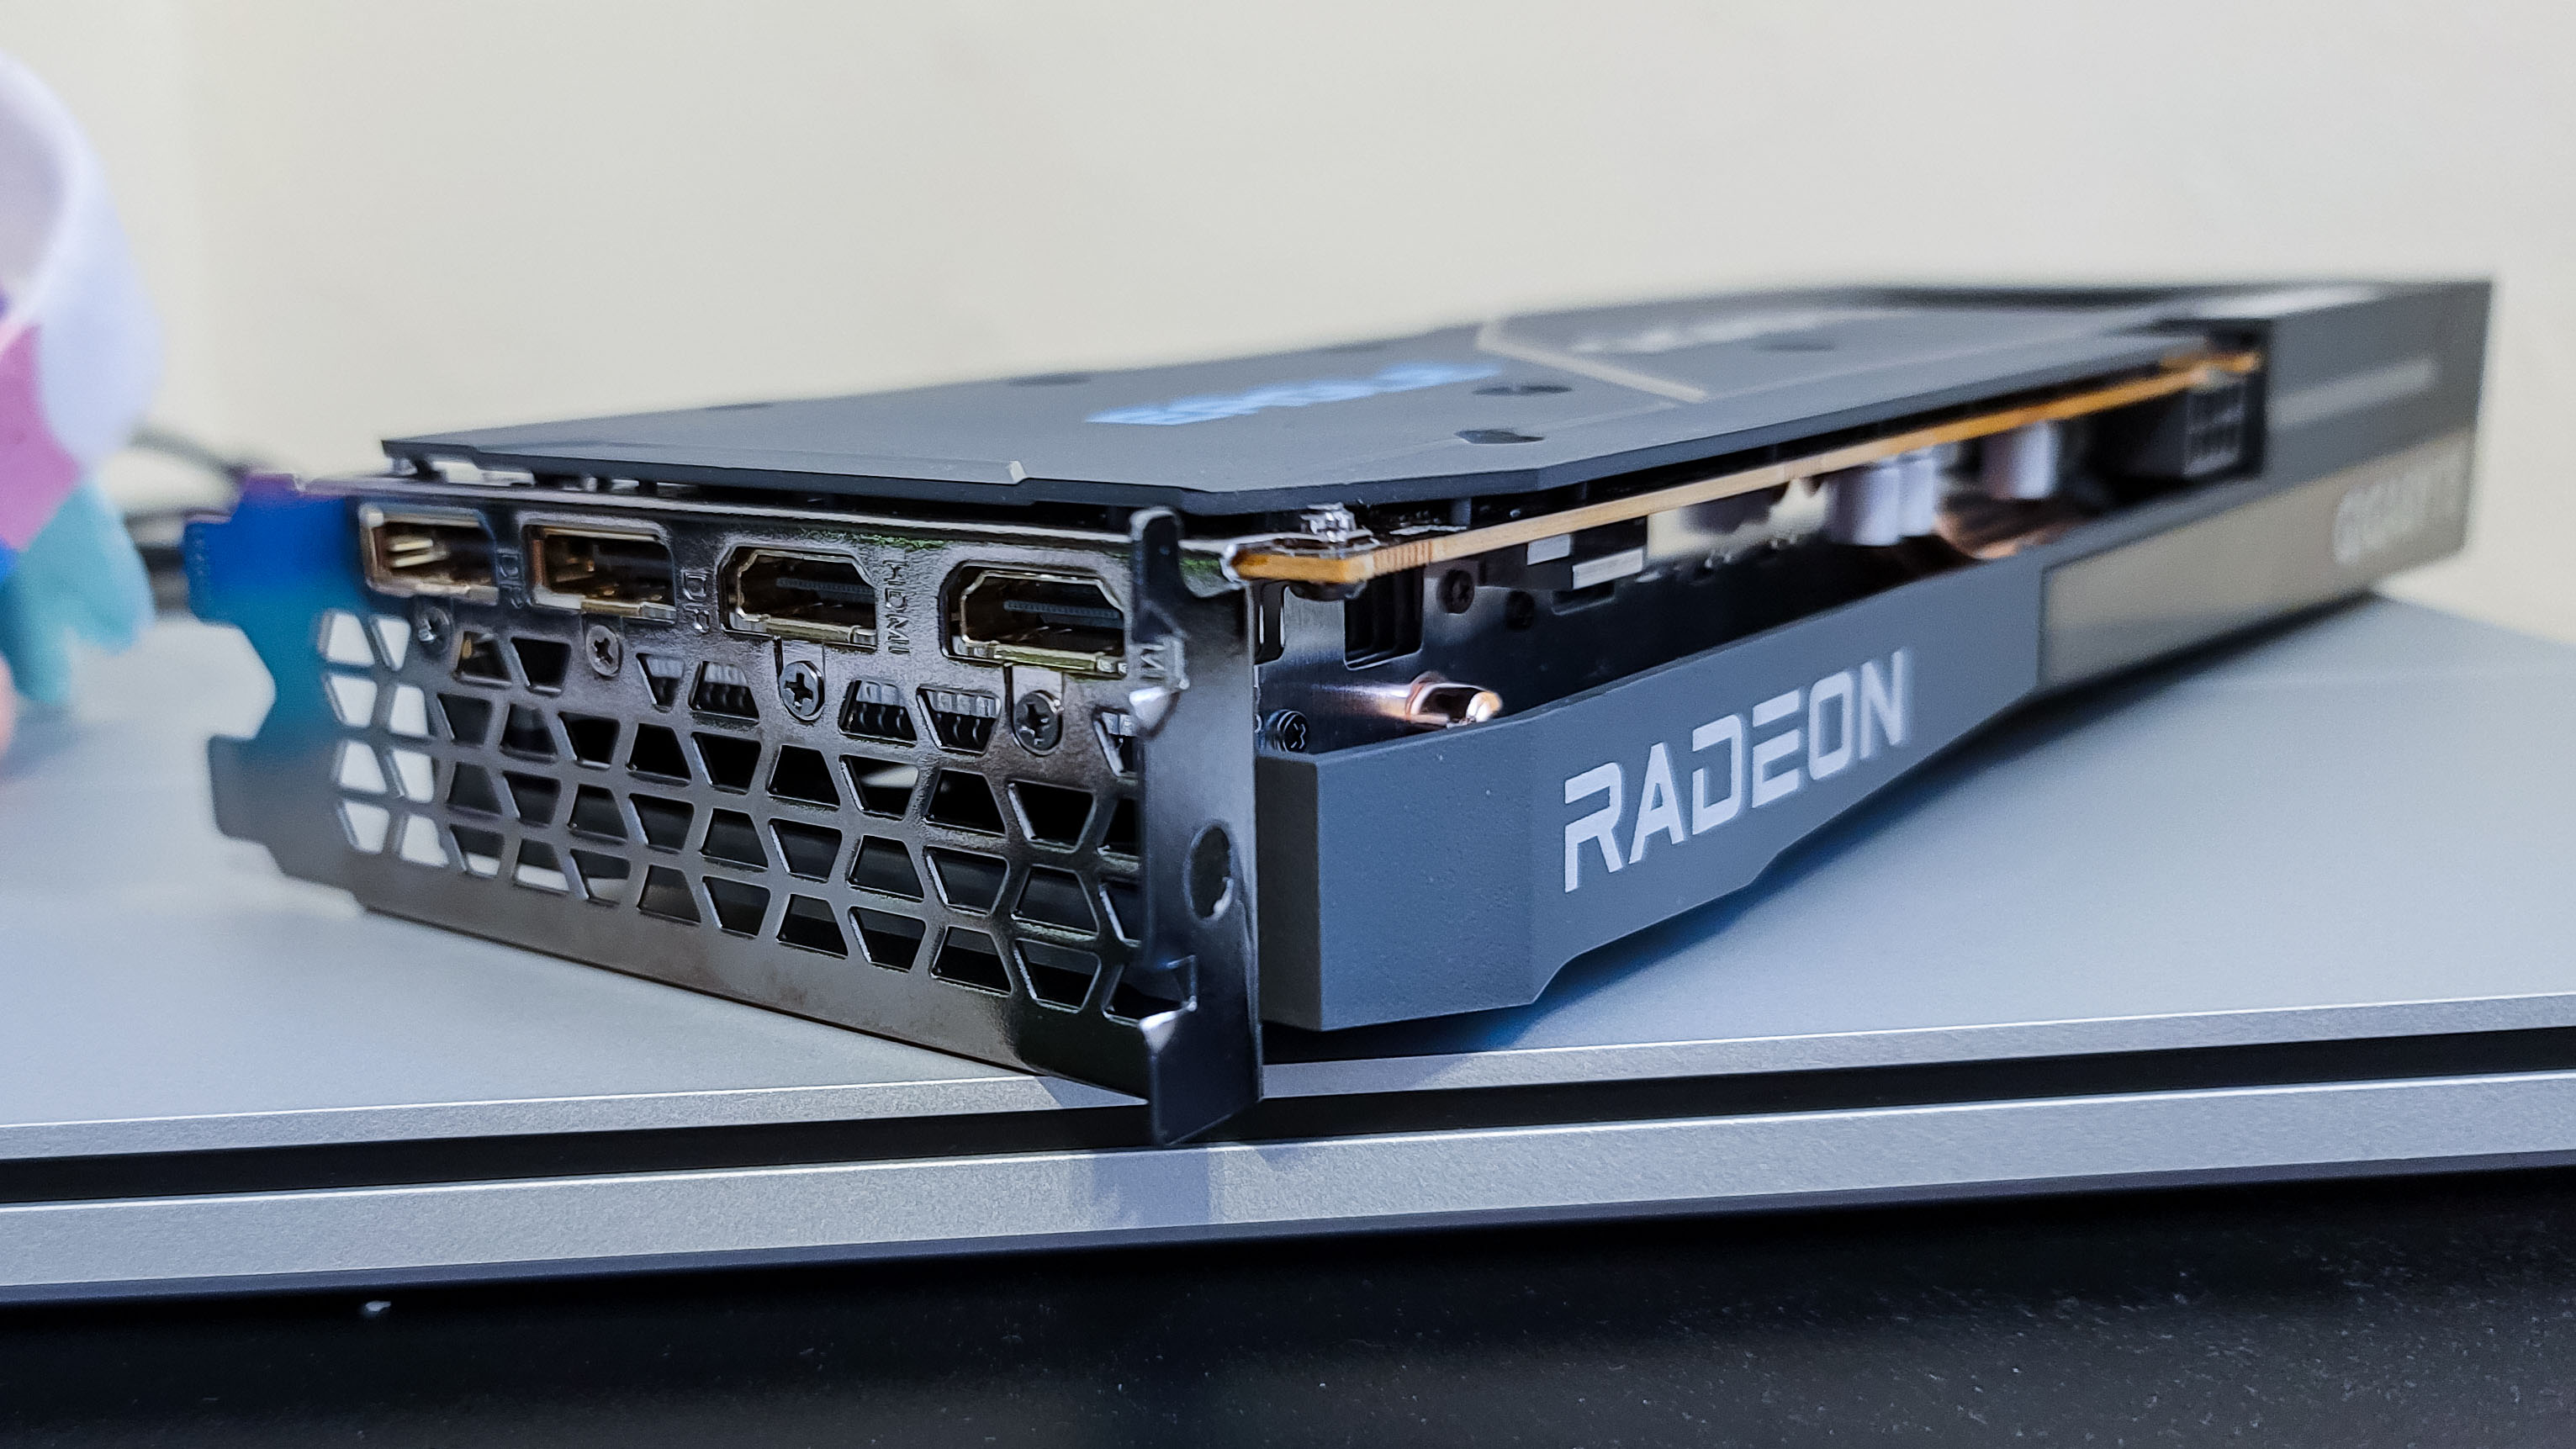 AMD Radeon RX 6600 on top of a laptop, on its side showing its ports